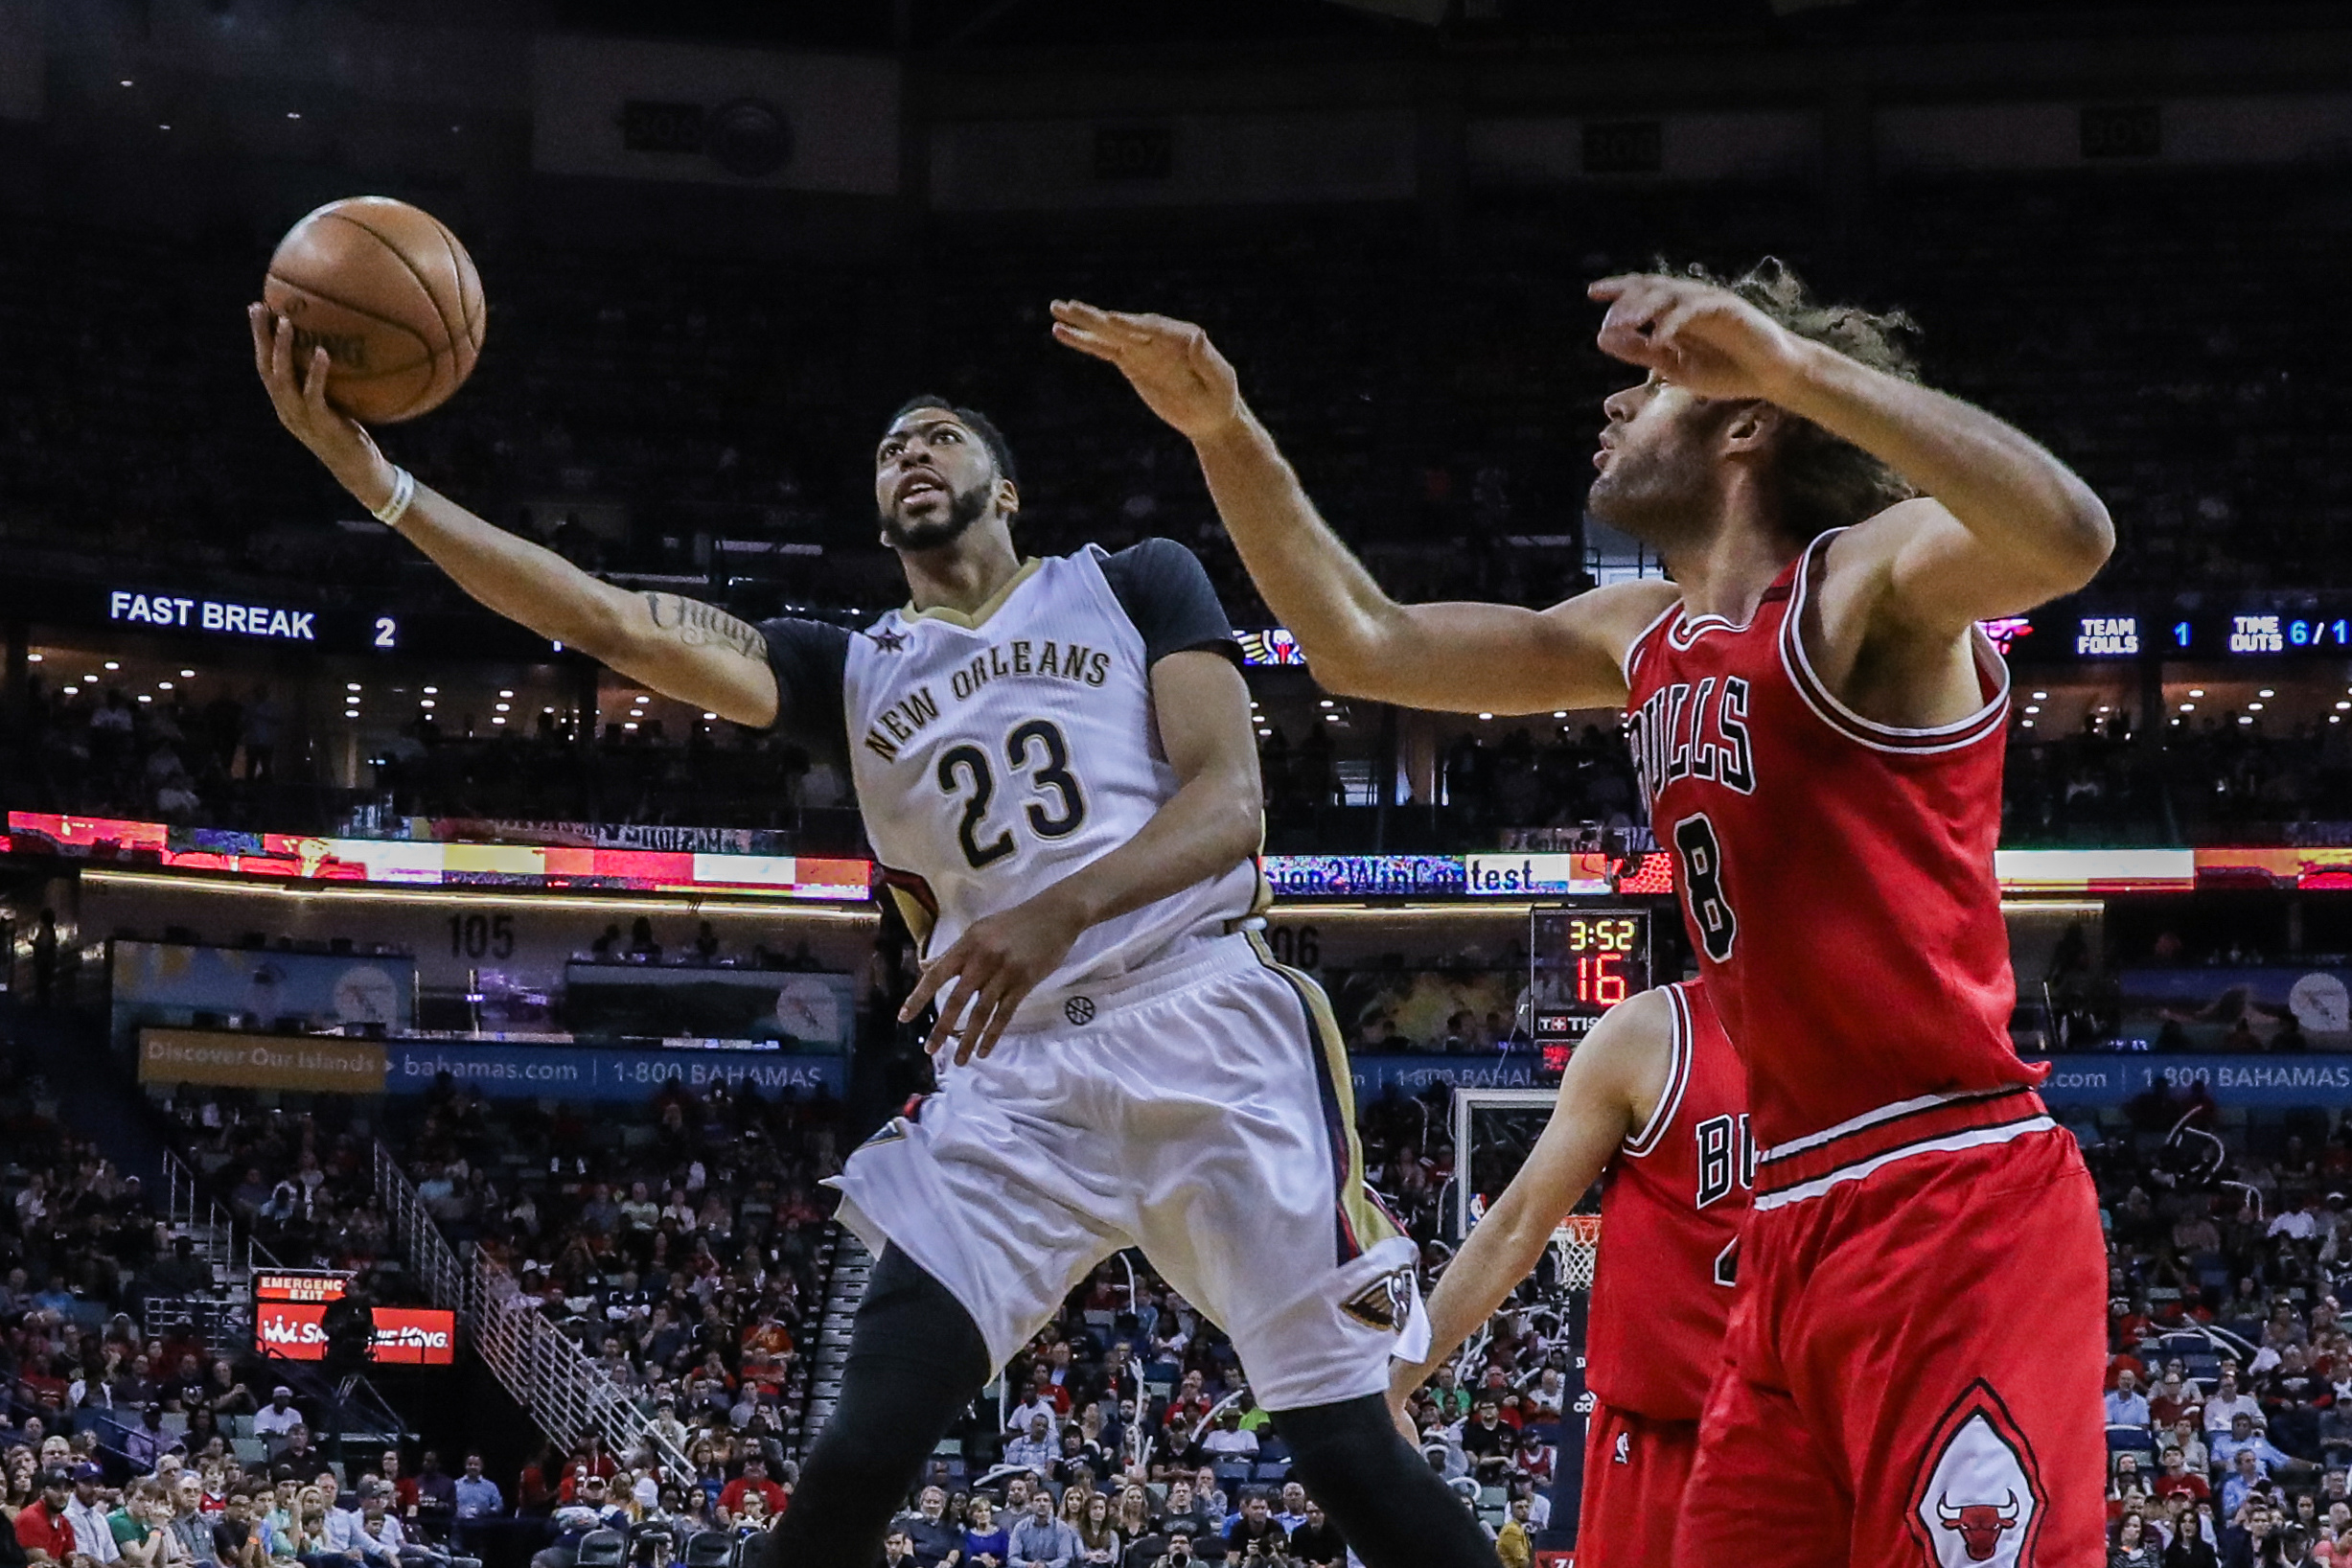 April 2, 2017 - New Orleans Pelicans forward Anthony Davis (23) drives to the basket against Chicago Bulls center Robin Lopez (8) during the game between the New Orleans Pelicans and the Chicago Bulls at the Smoothie King Center in New Orleans, LA. Stephen Lew/CSM(Credit Image: © Stephen Lew/CSM via ZUMA Wire)